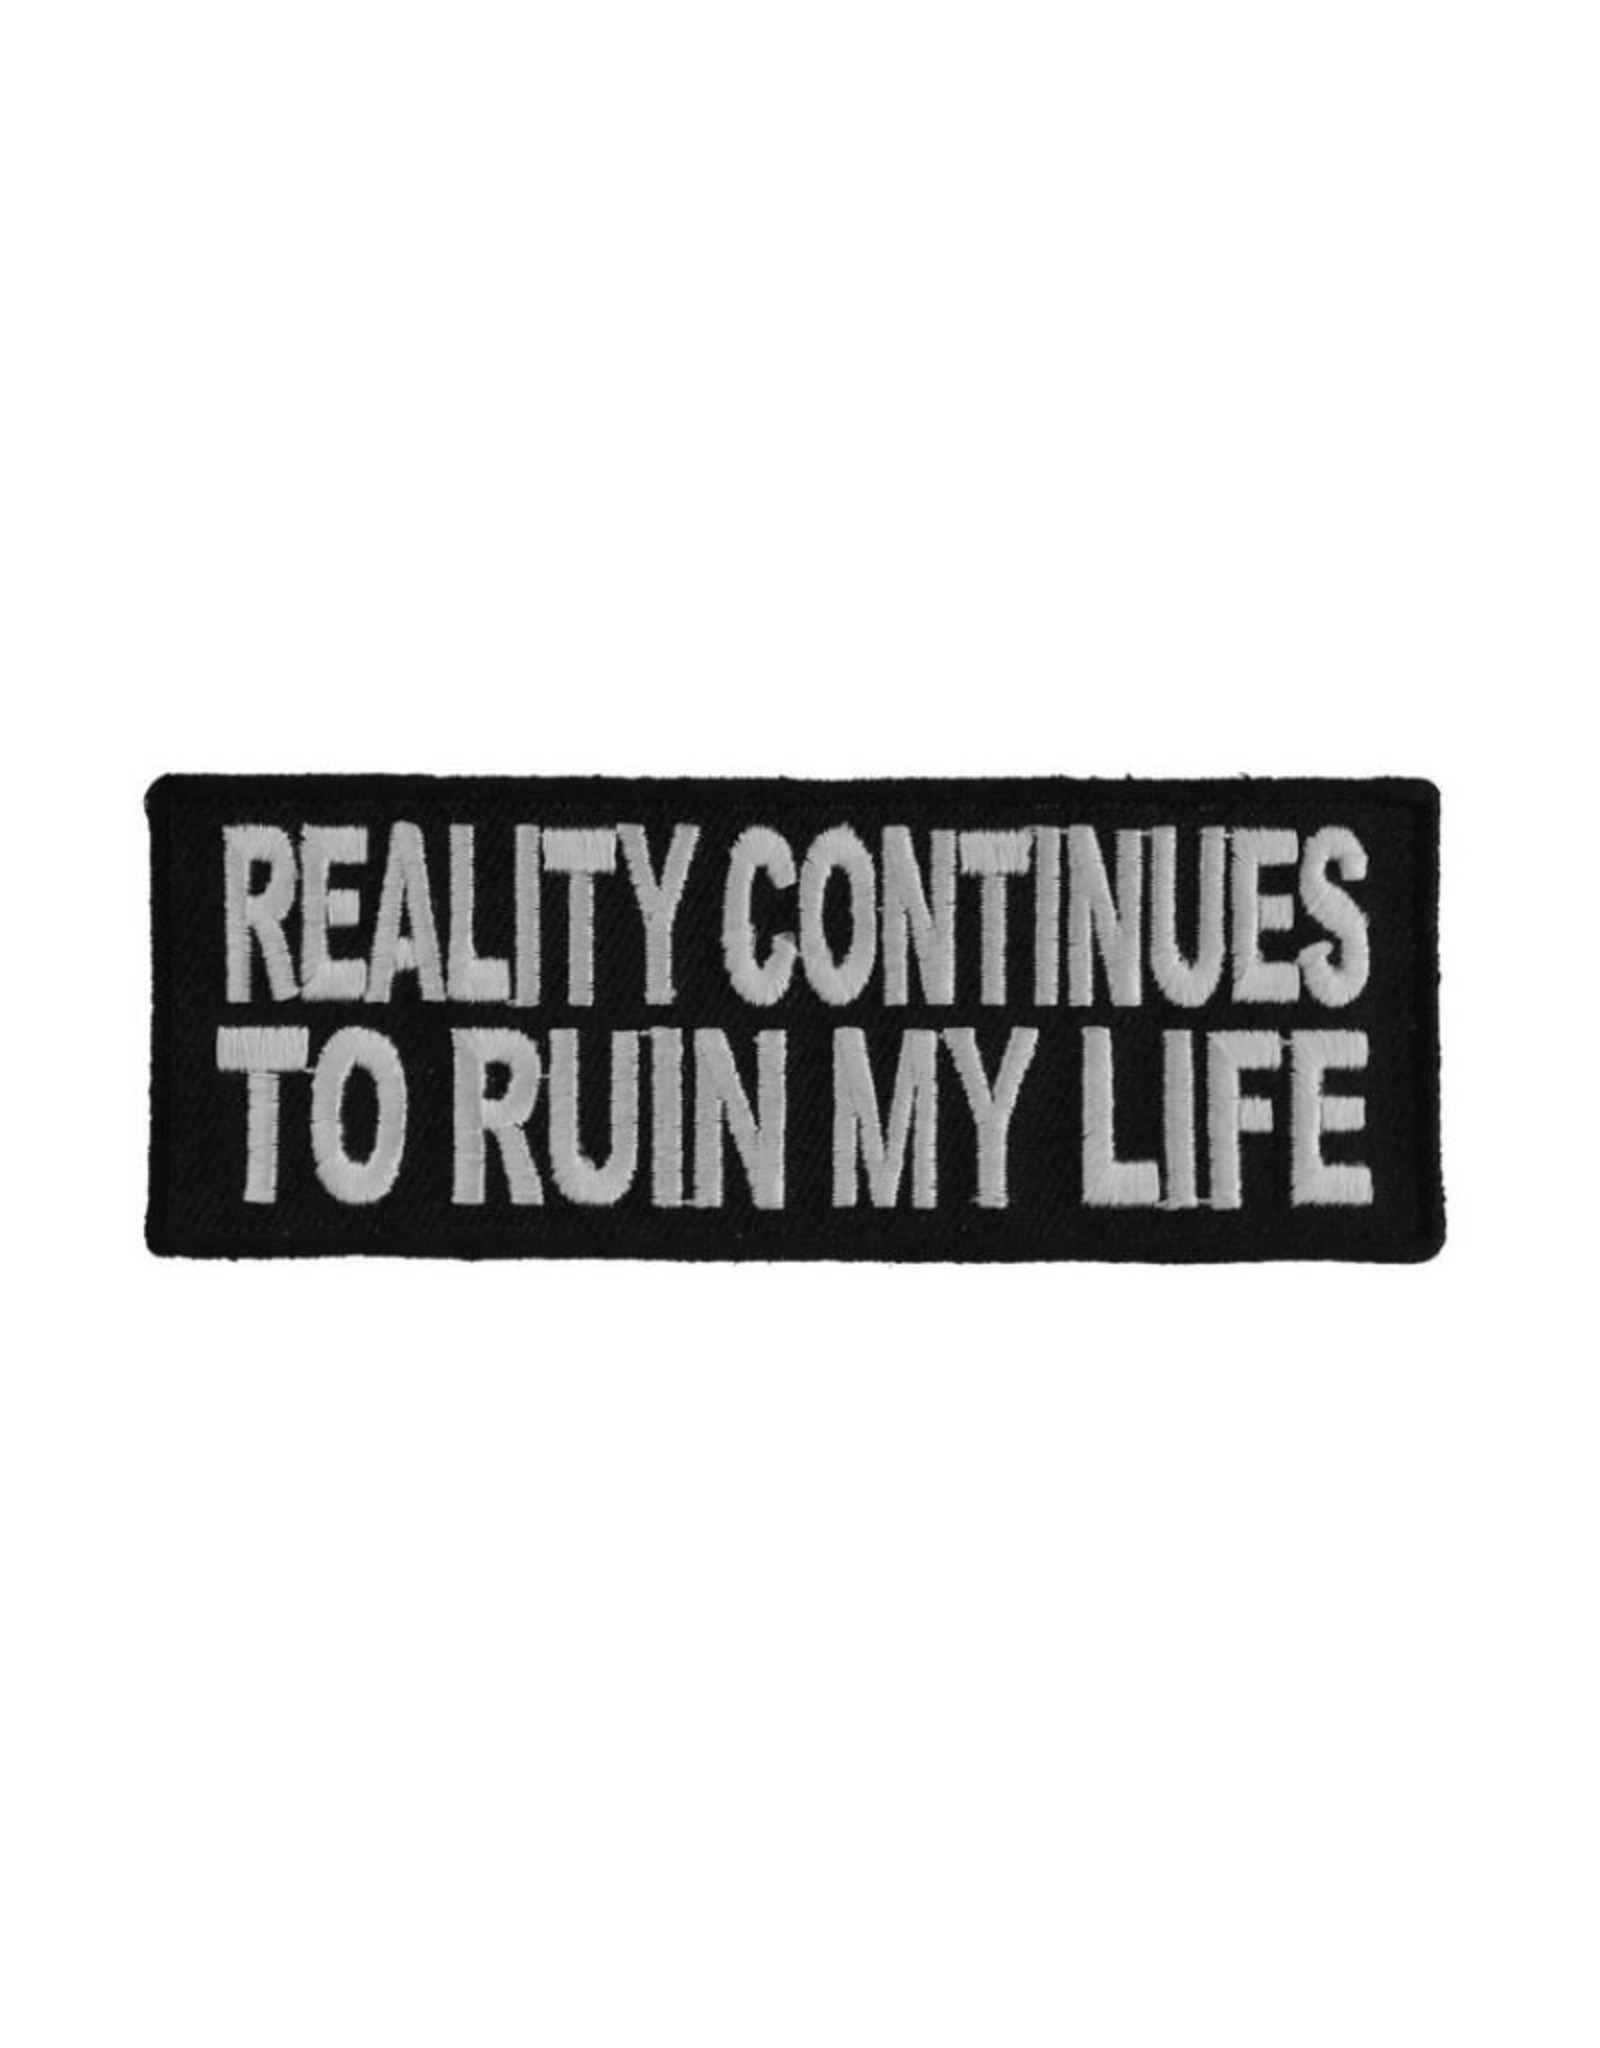 "MidMil Embroidered Patch ""Reality continues to ruin my life"" 4"" wide x 1.5"" high Black"